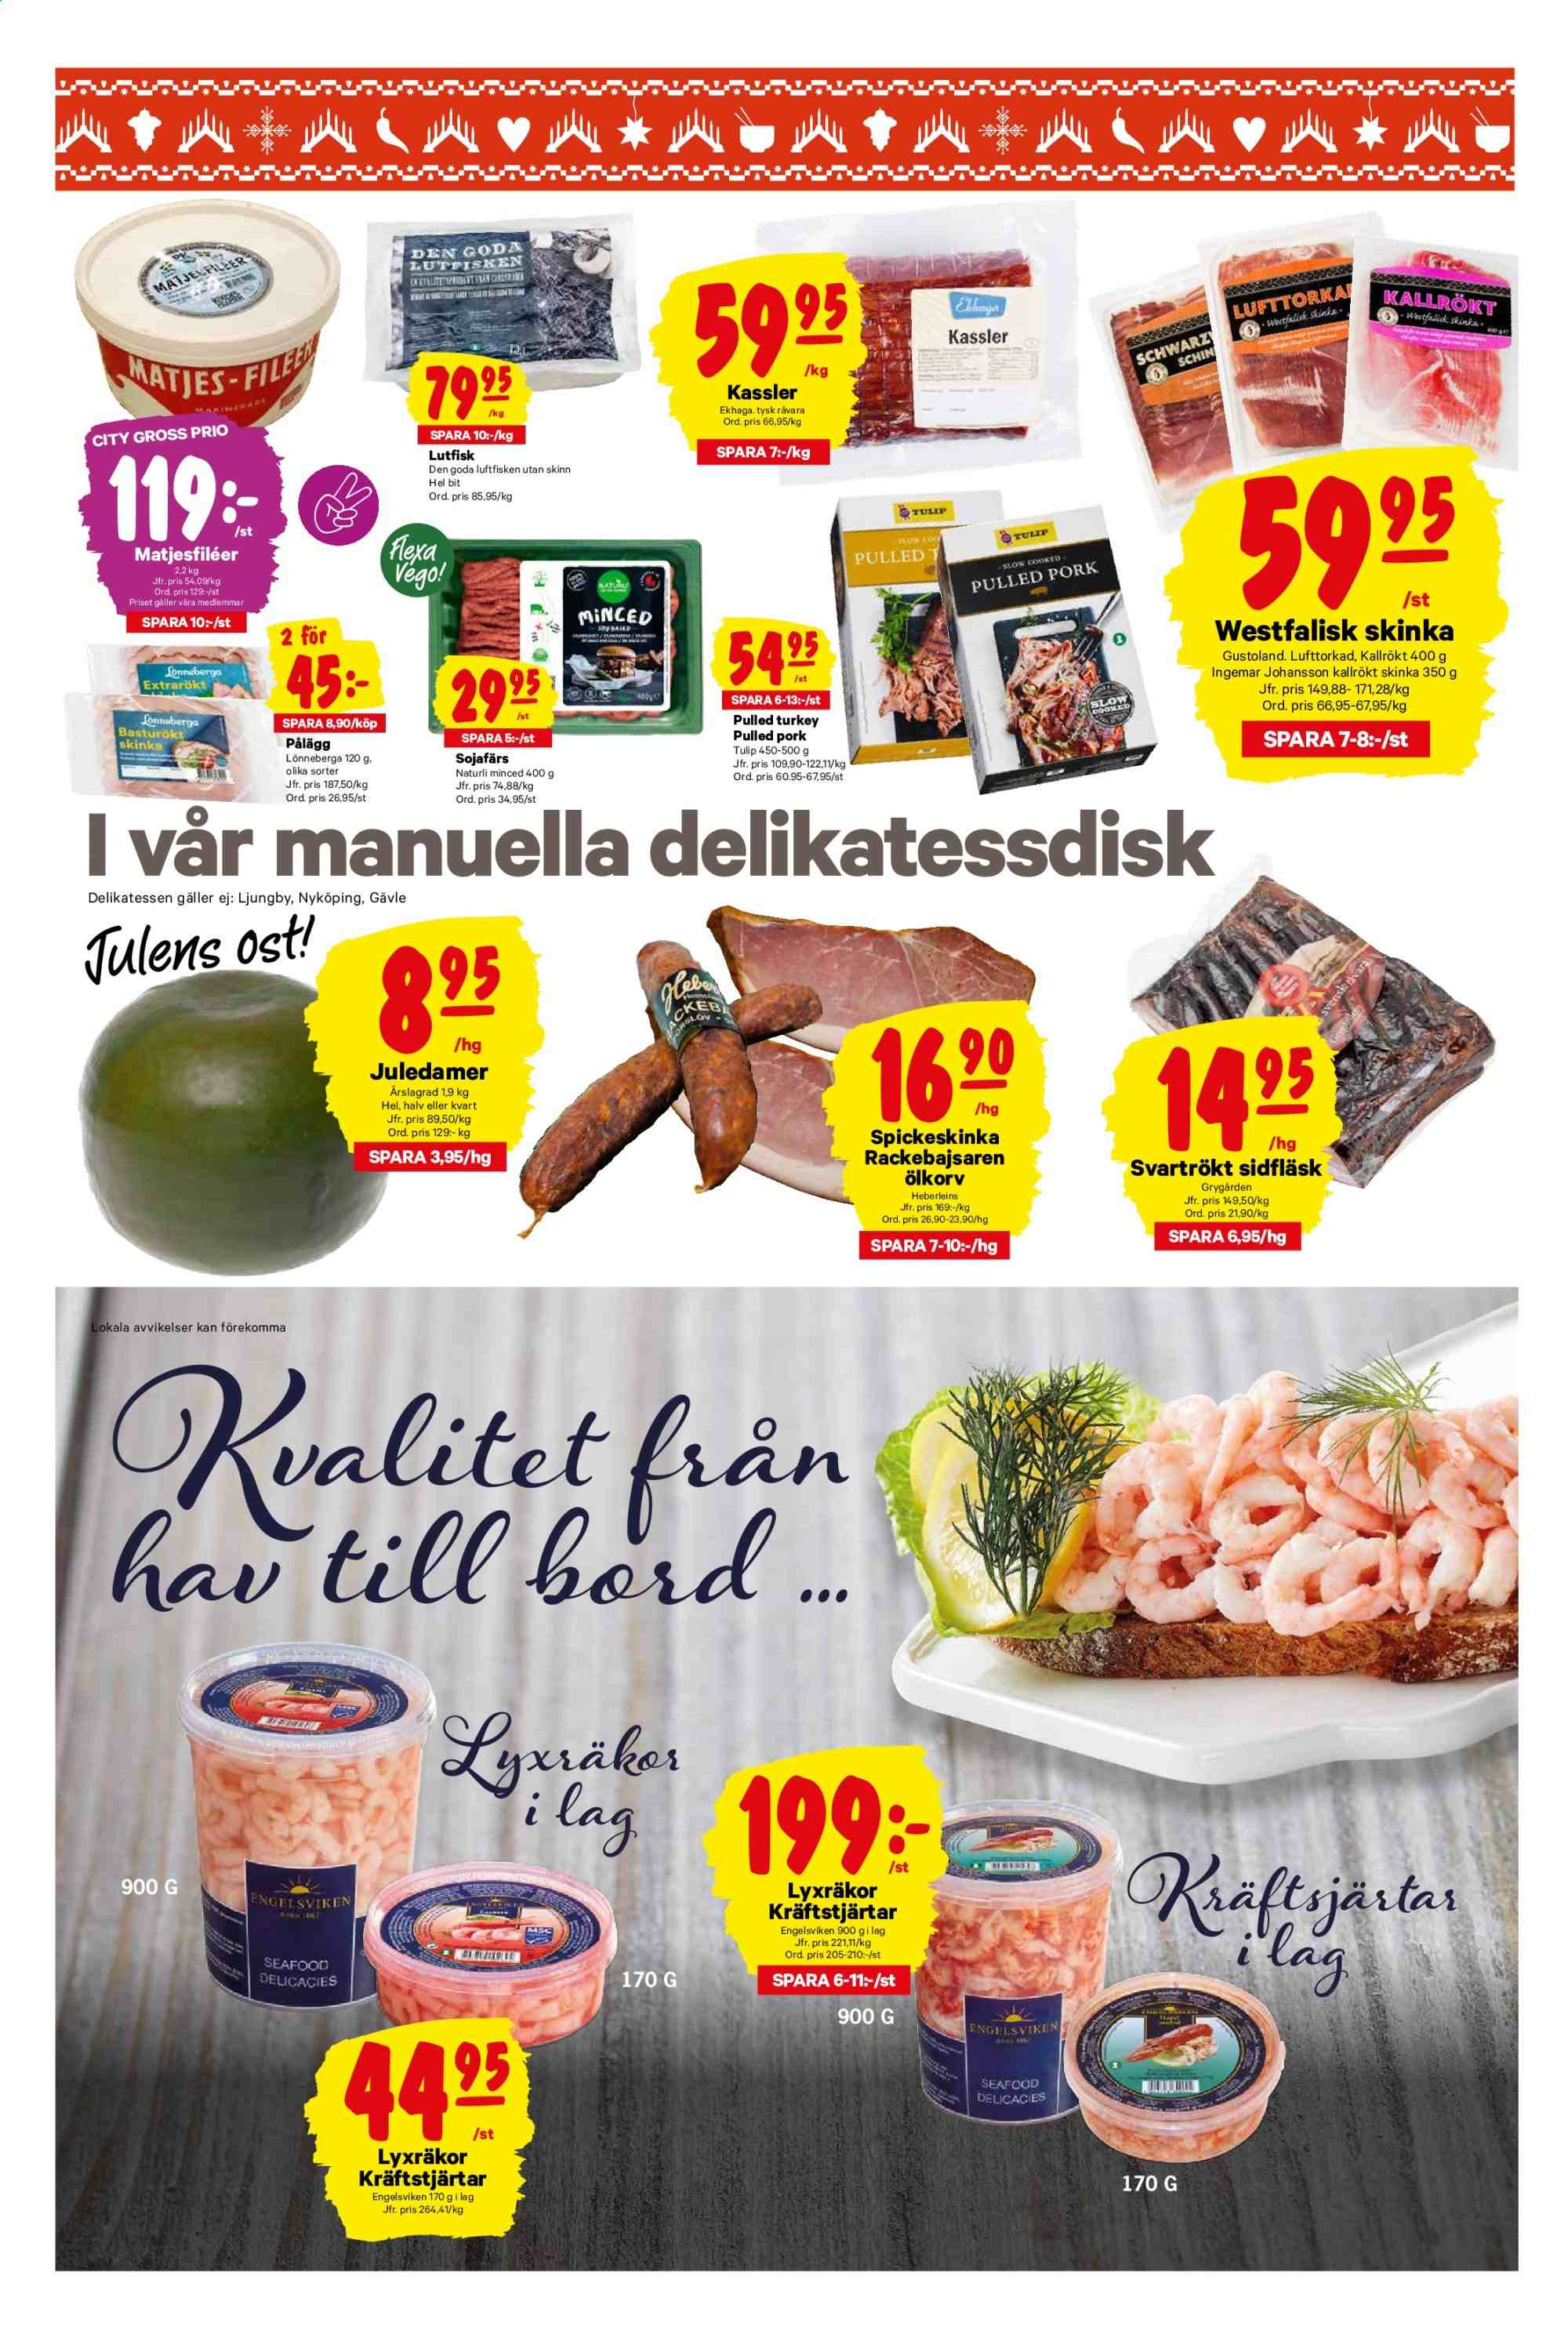 City Gross reklamblad - 25/11 2019 - 1/12 2019. Sida 3.